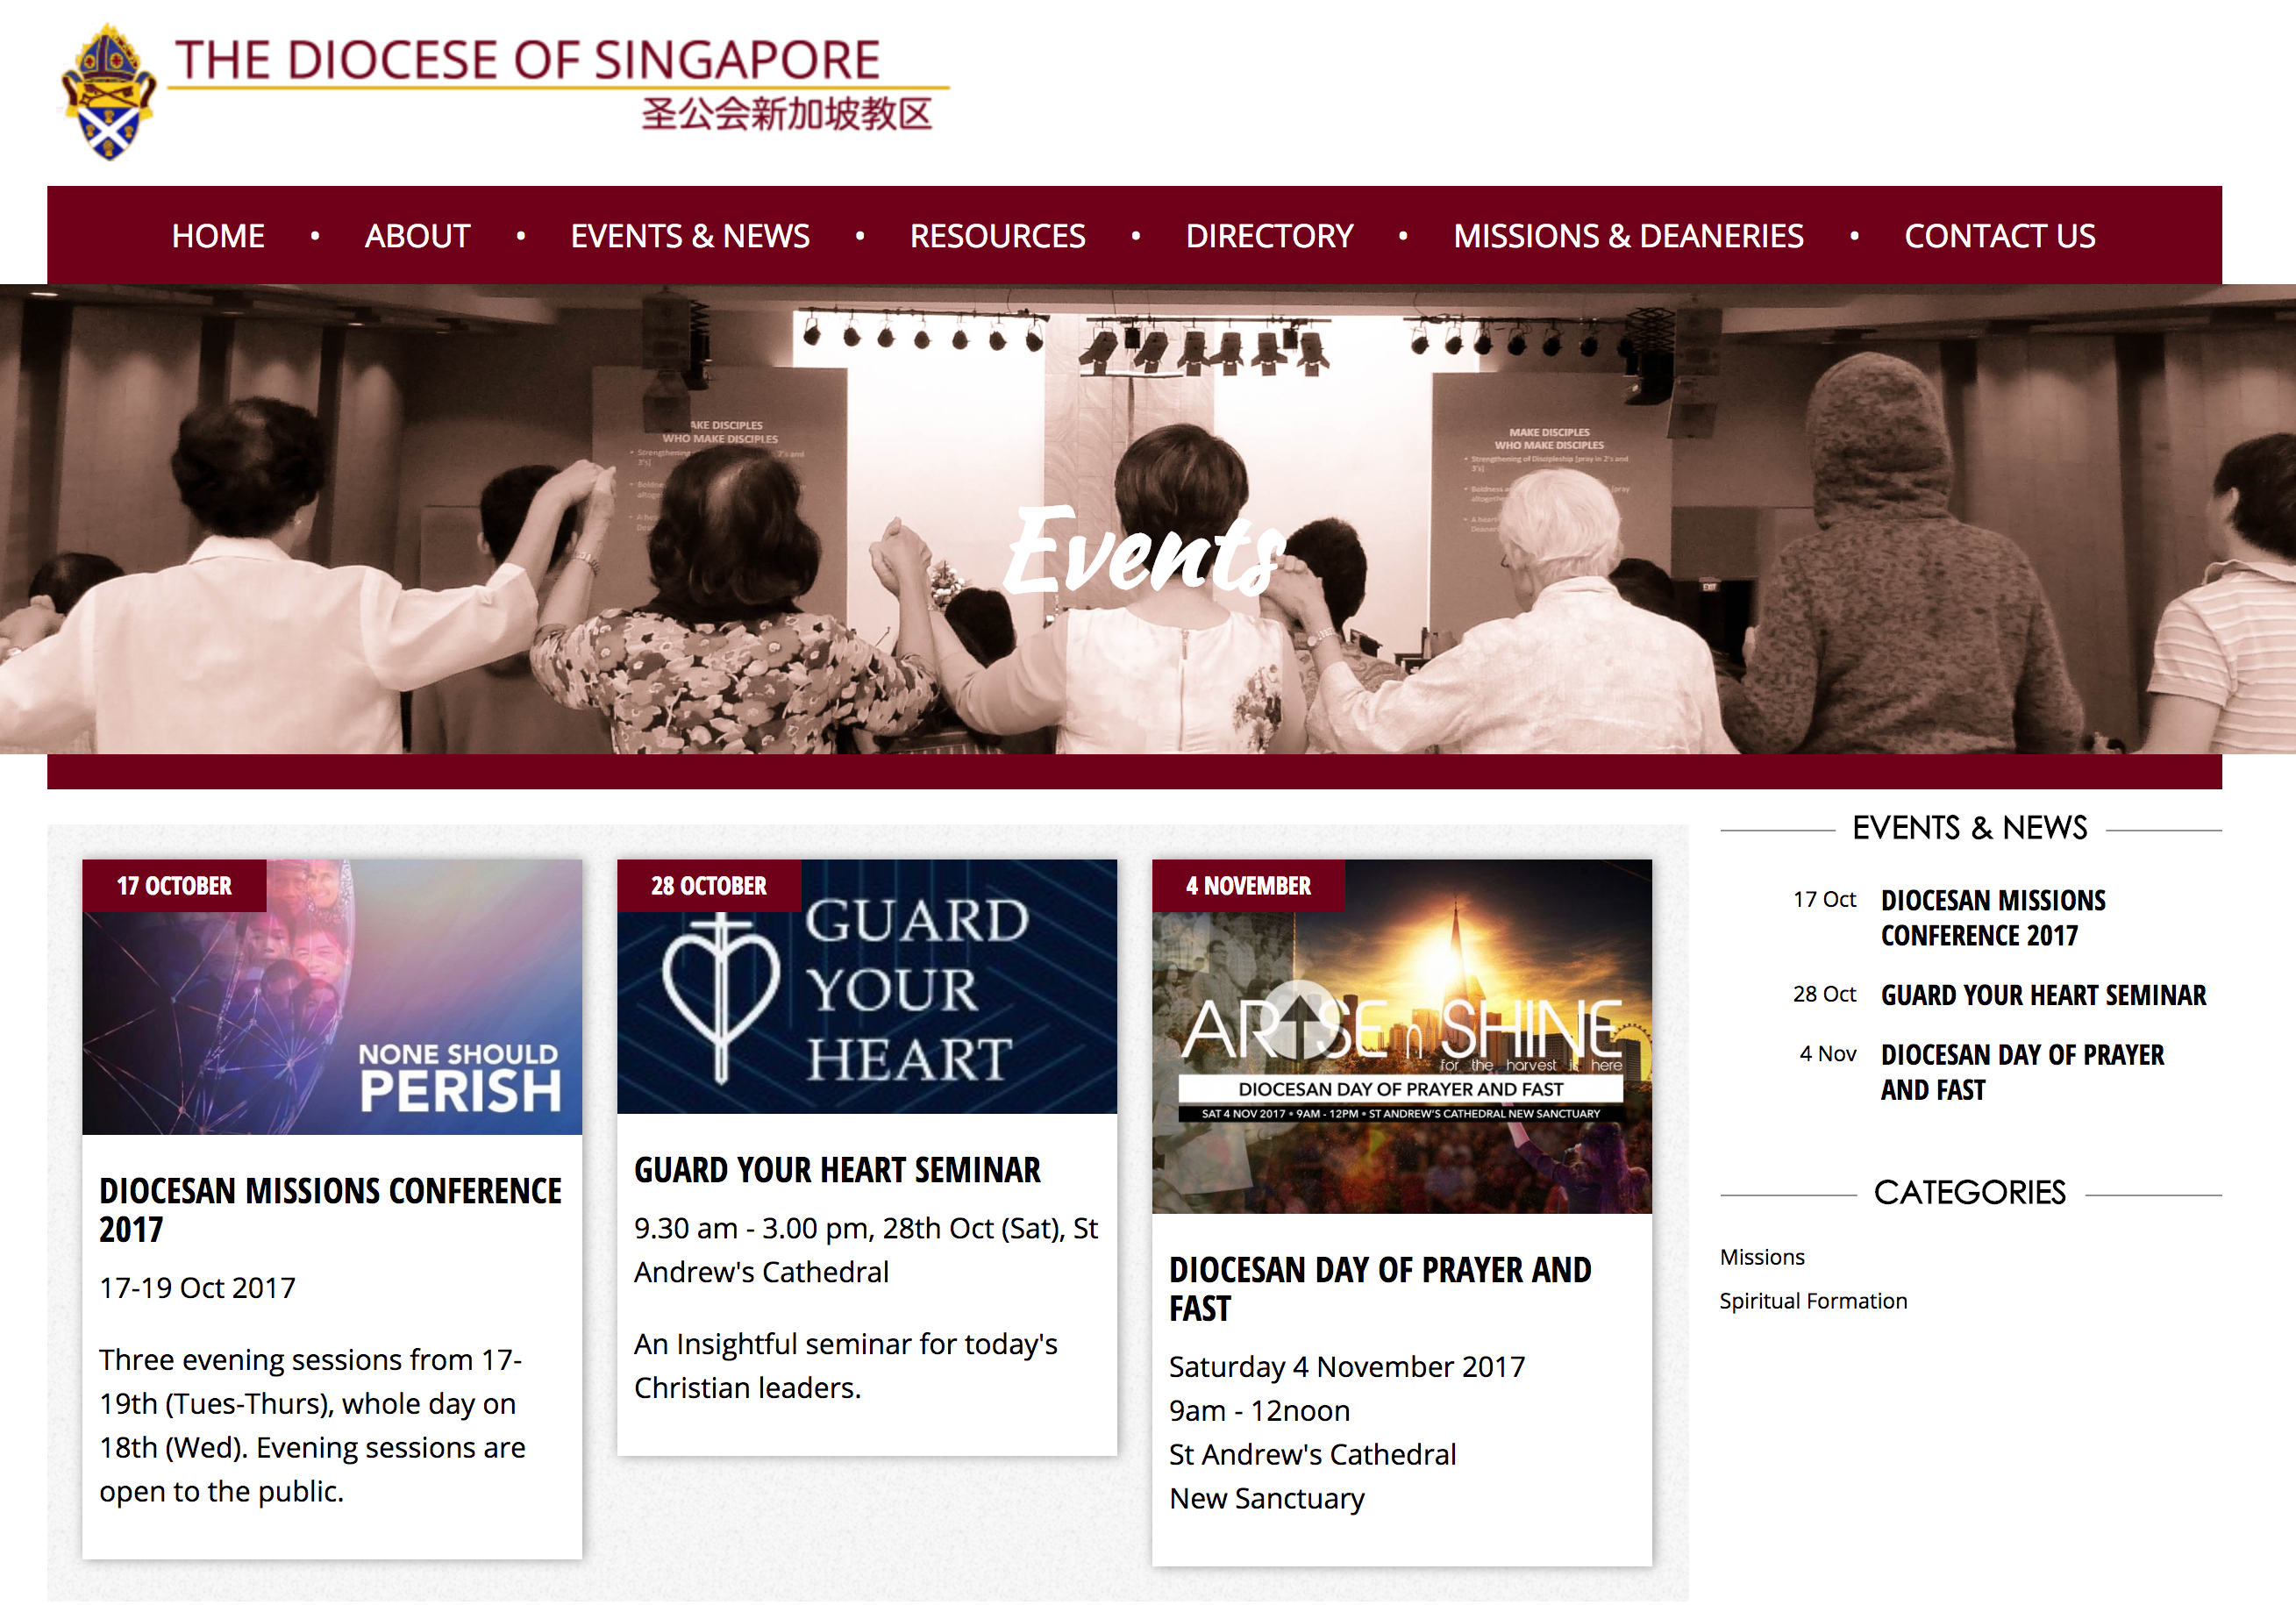 Screenshot of The Diocese of Singapore website Events page